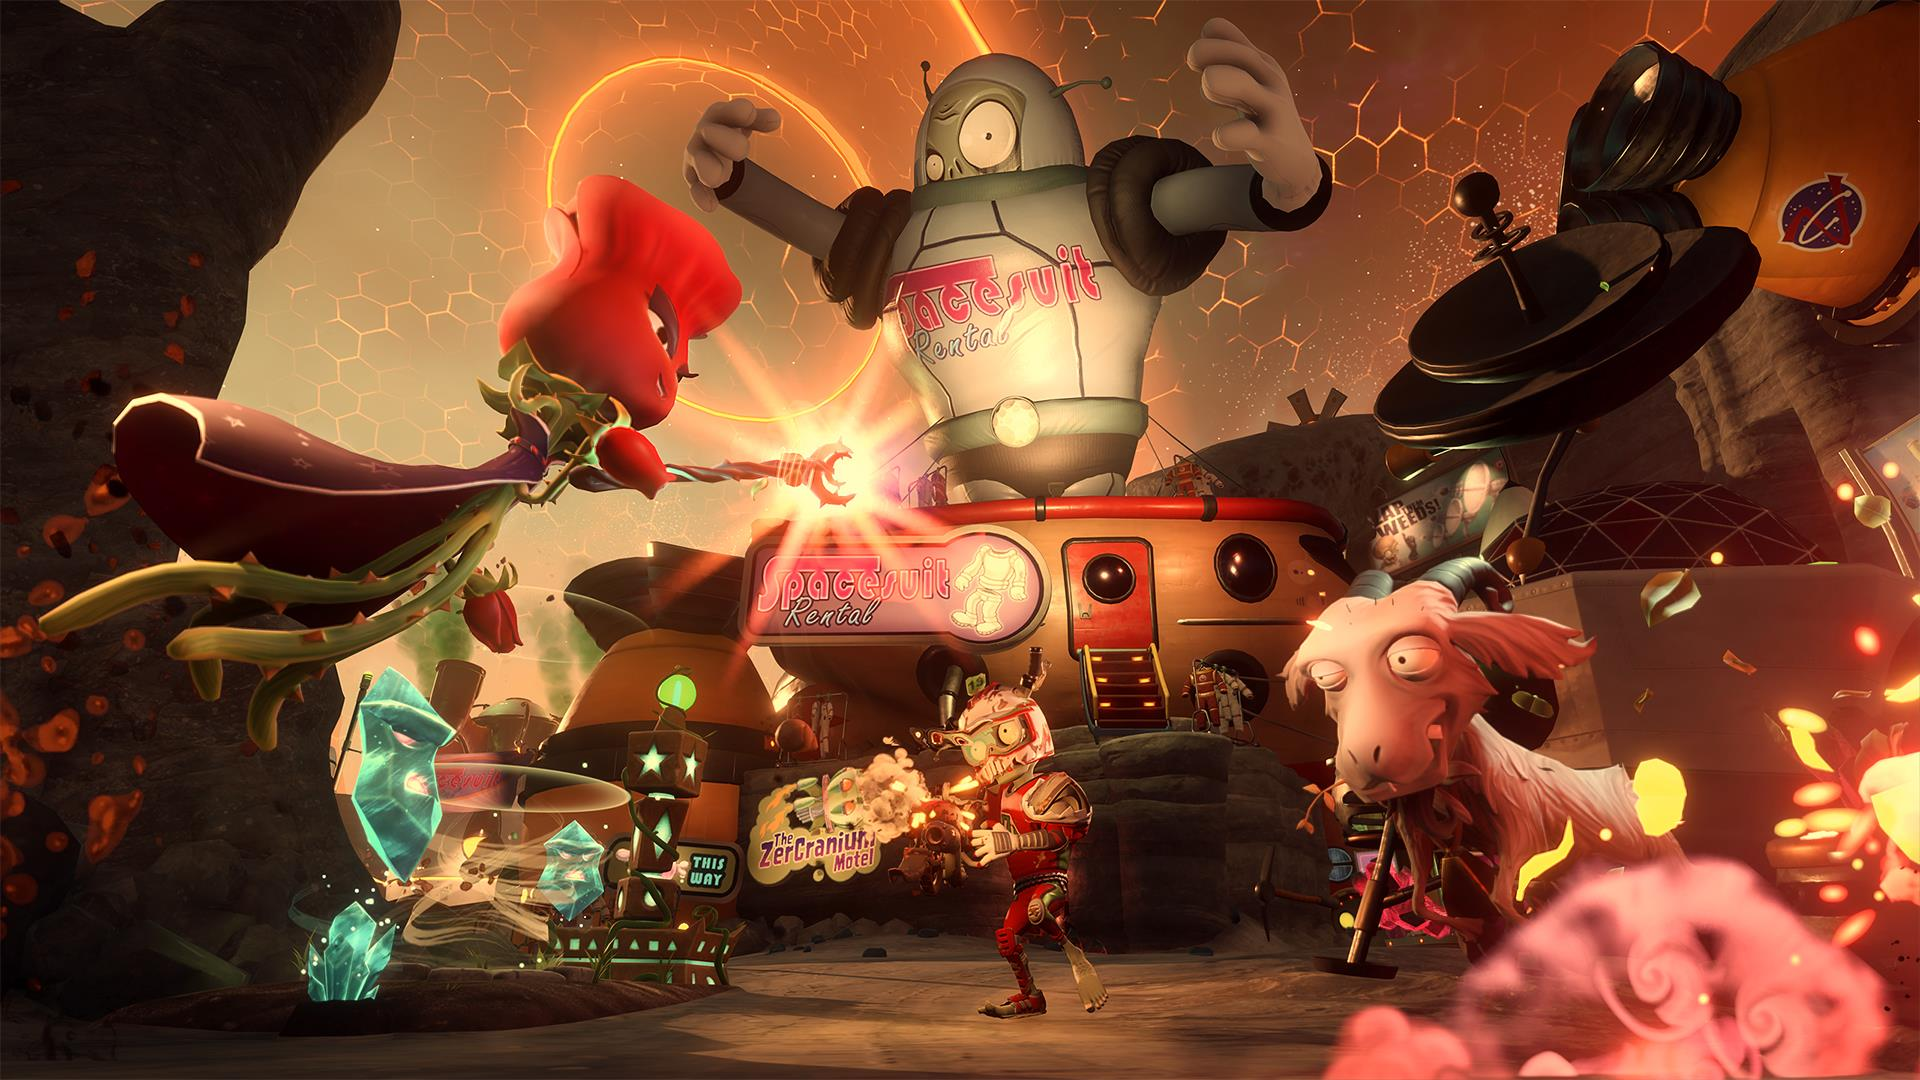 Plants vs Zombies: Garden Warfare 2 beta available now - VG247